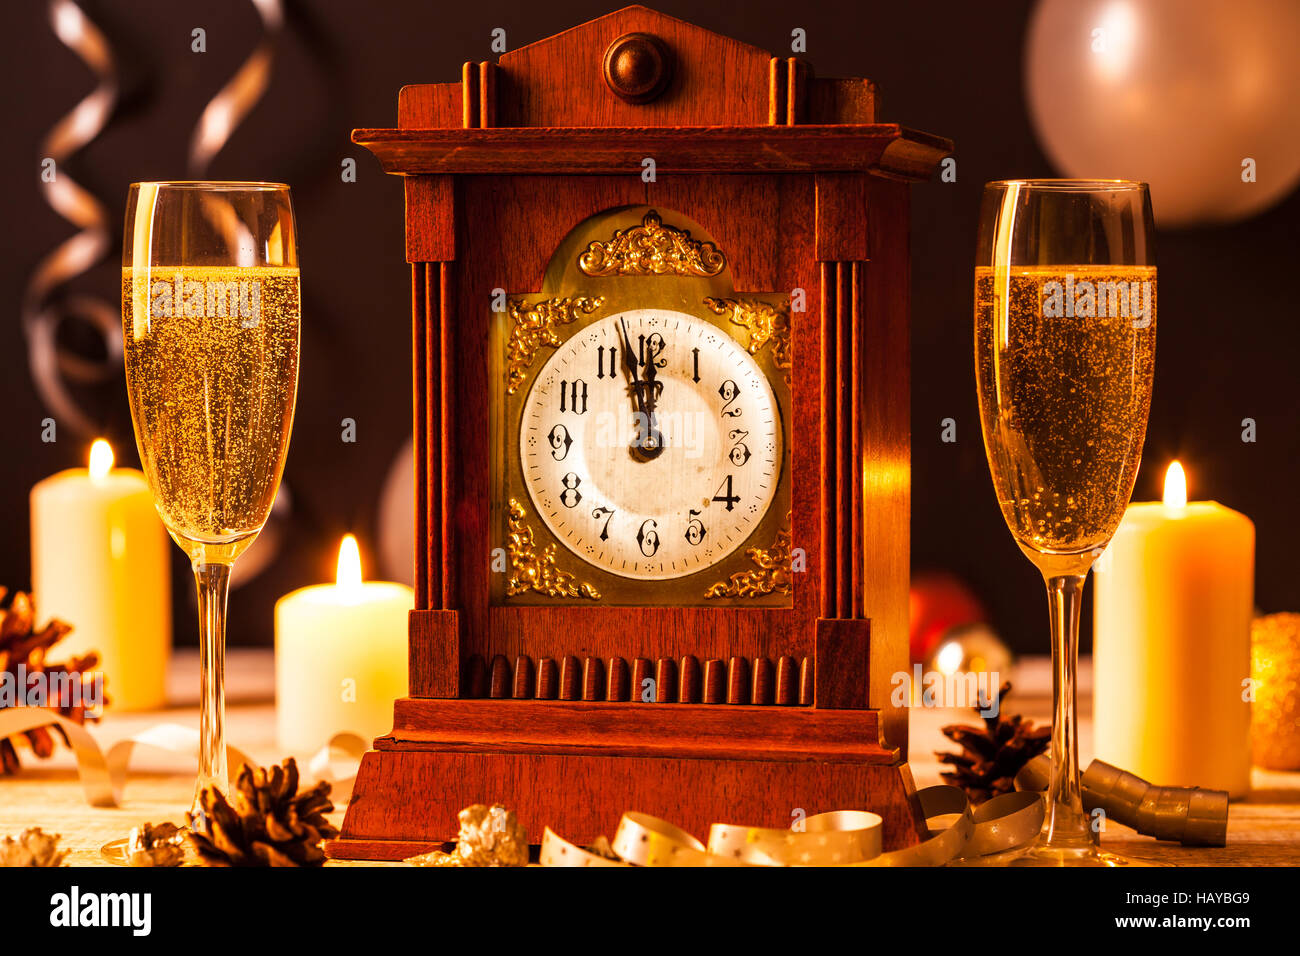 Two glasses of champagne and a vintage clock at a New Years Eve party. - Stock Image